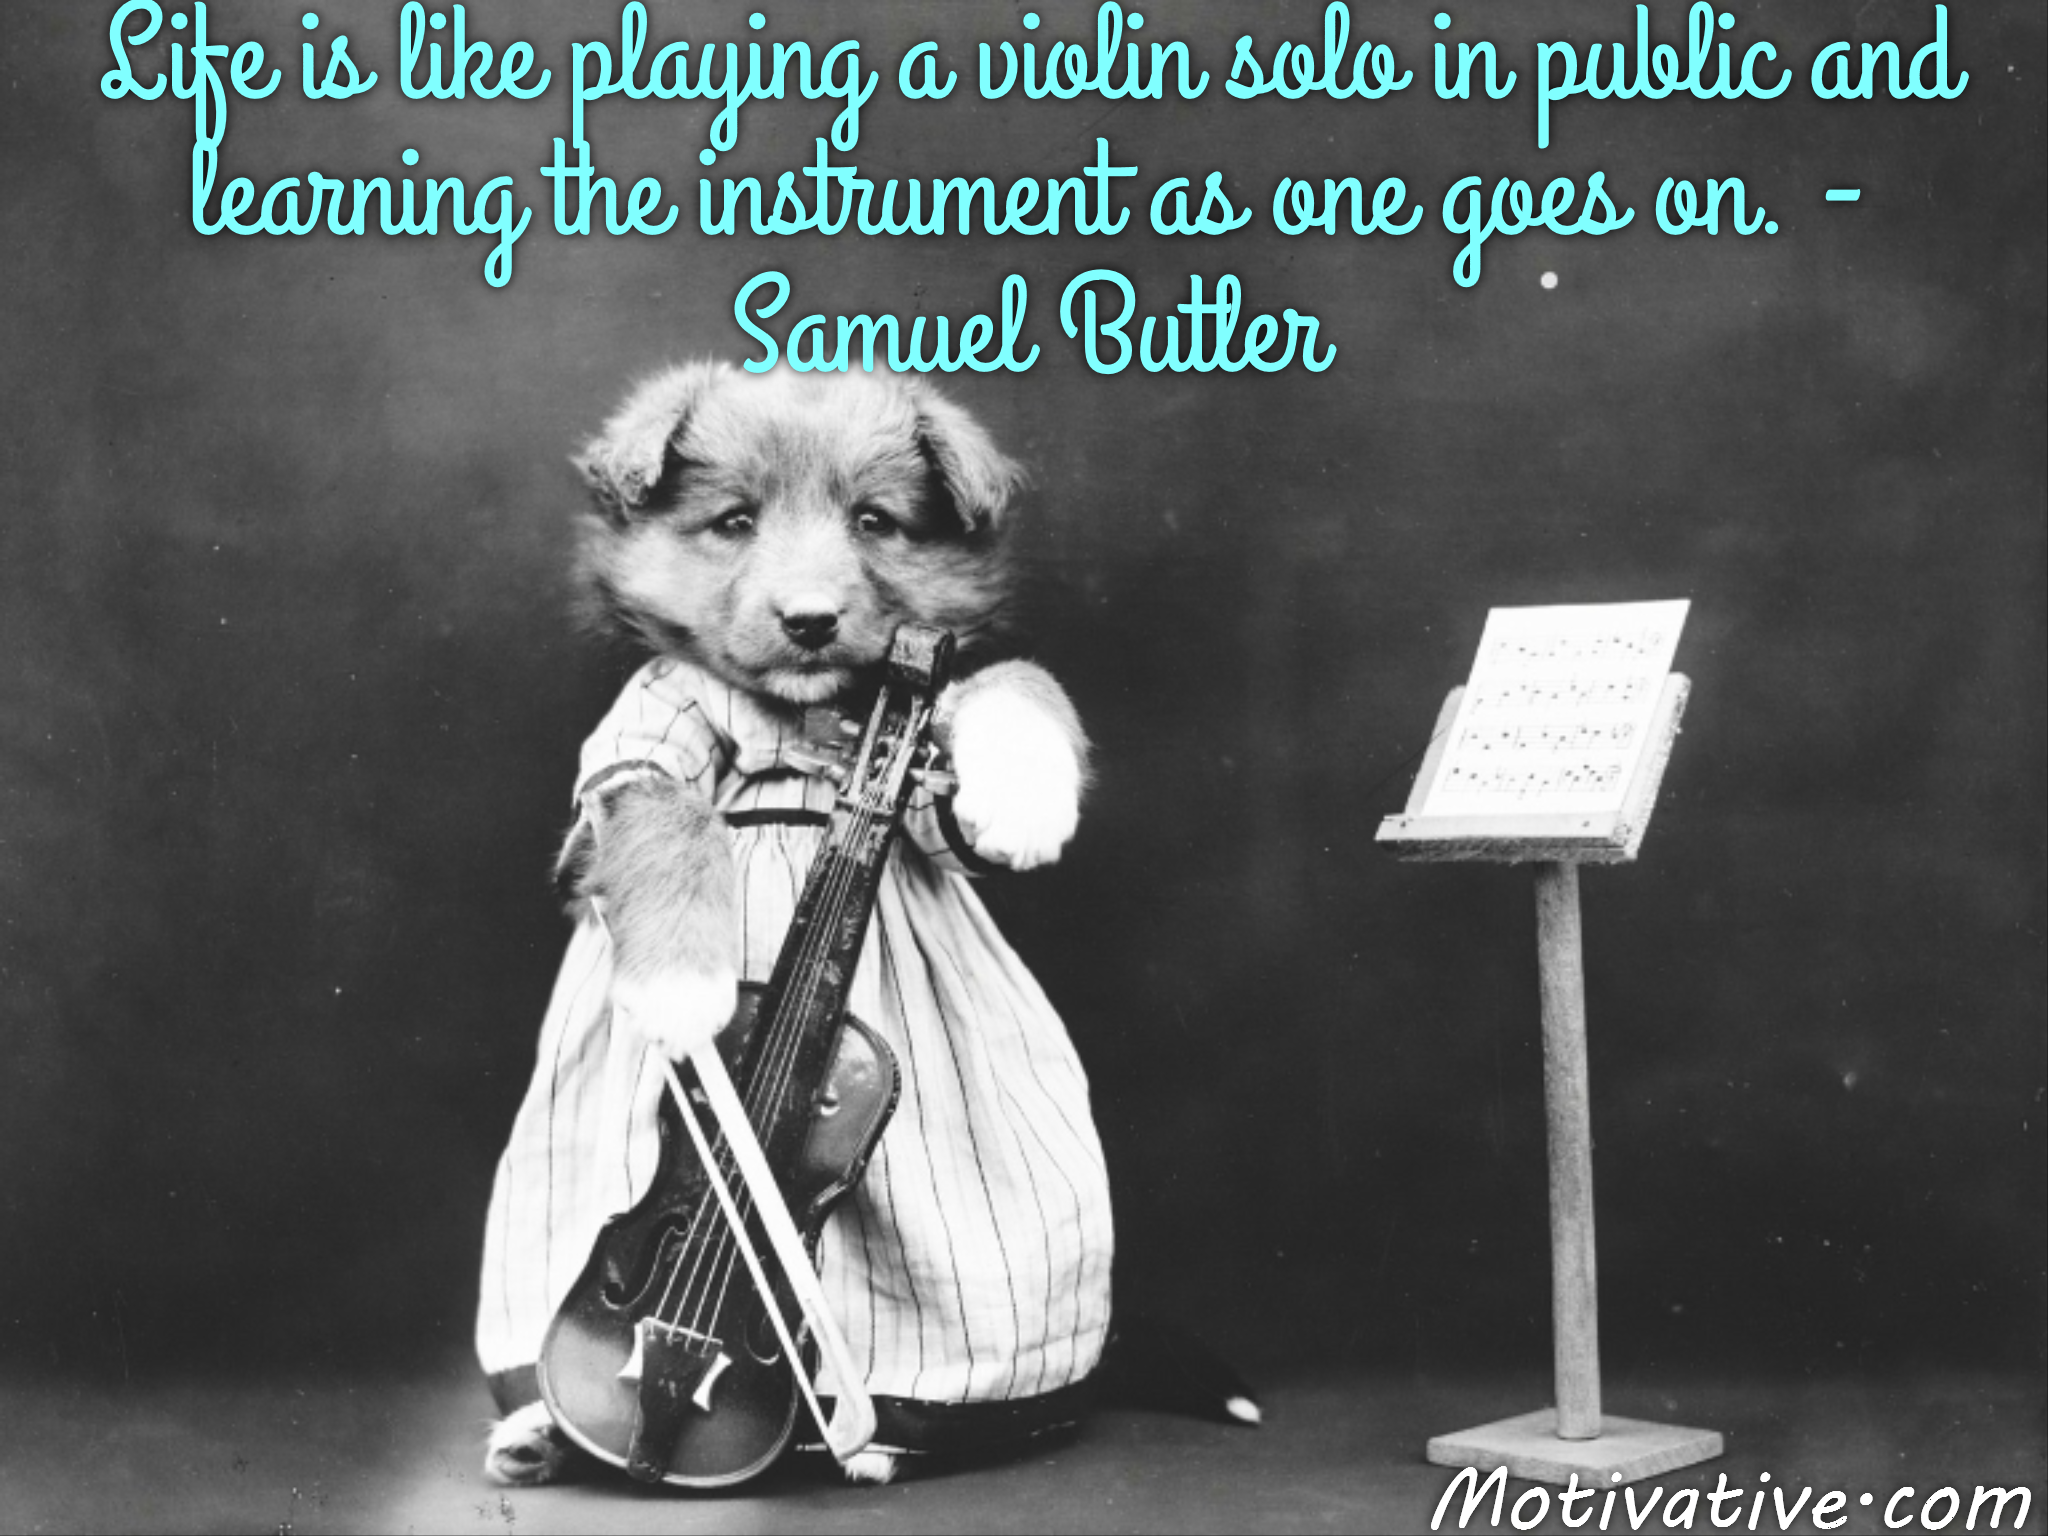 Life is like playing a violin solo in public and learning the instrument as one goes on. – Samuel Butler